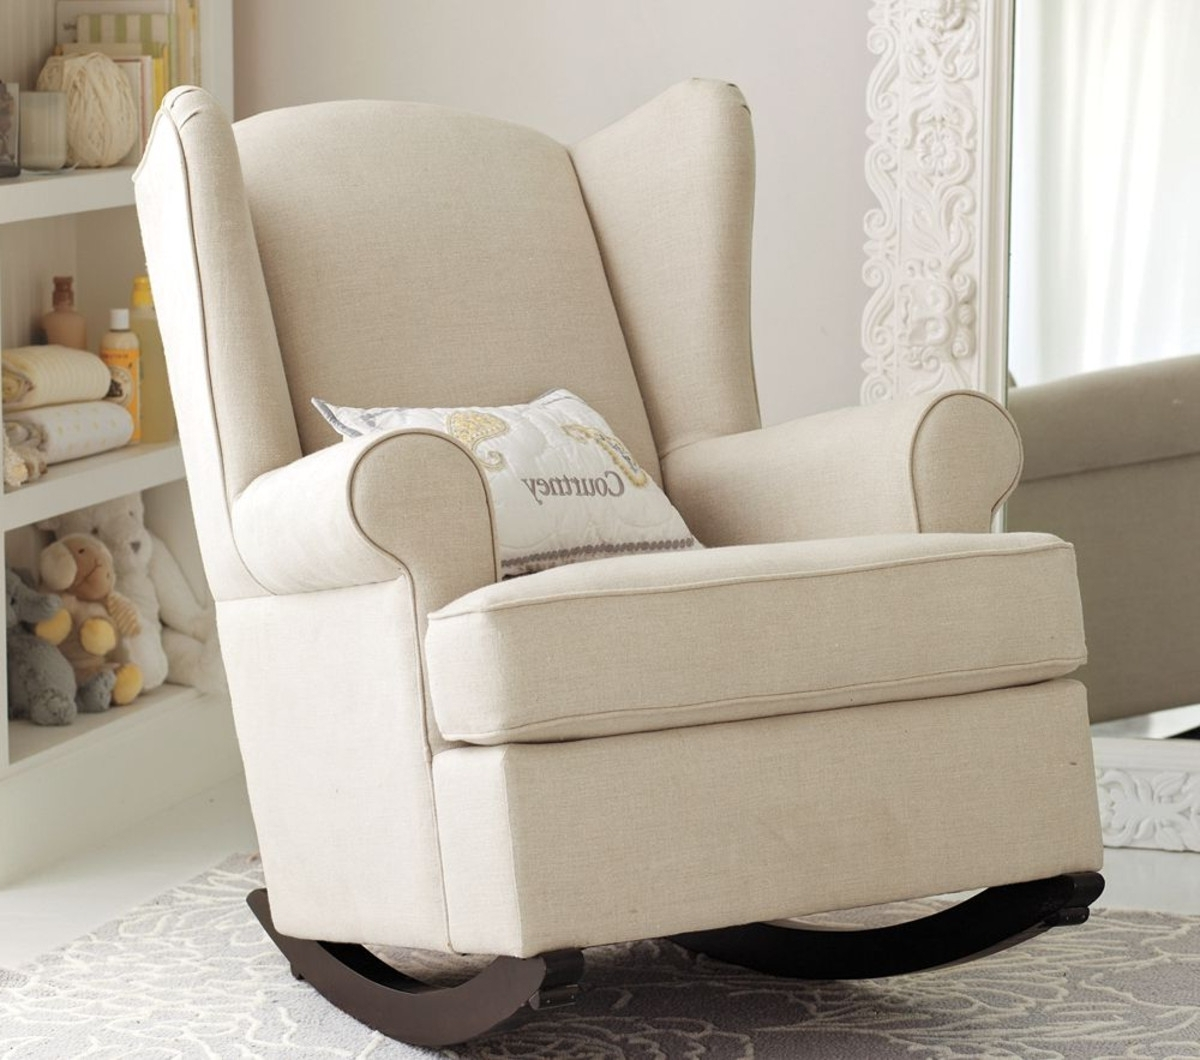 Current Rocking Chair Nursery Target F65X In Brilliant Home Design Furniture Intended For Rocking Chairs At Target (View 4 of 15)